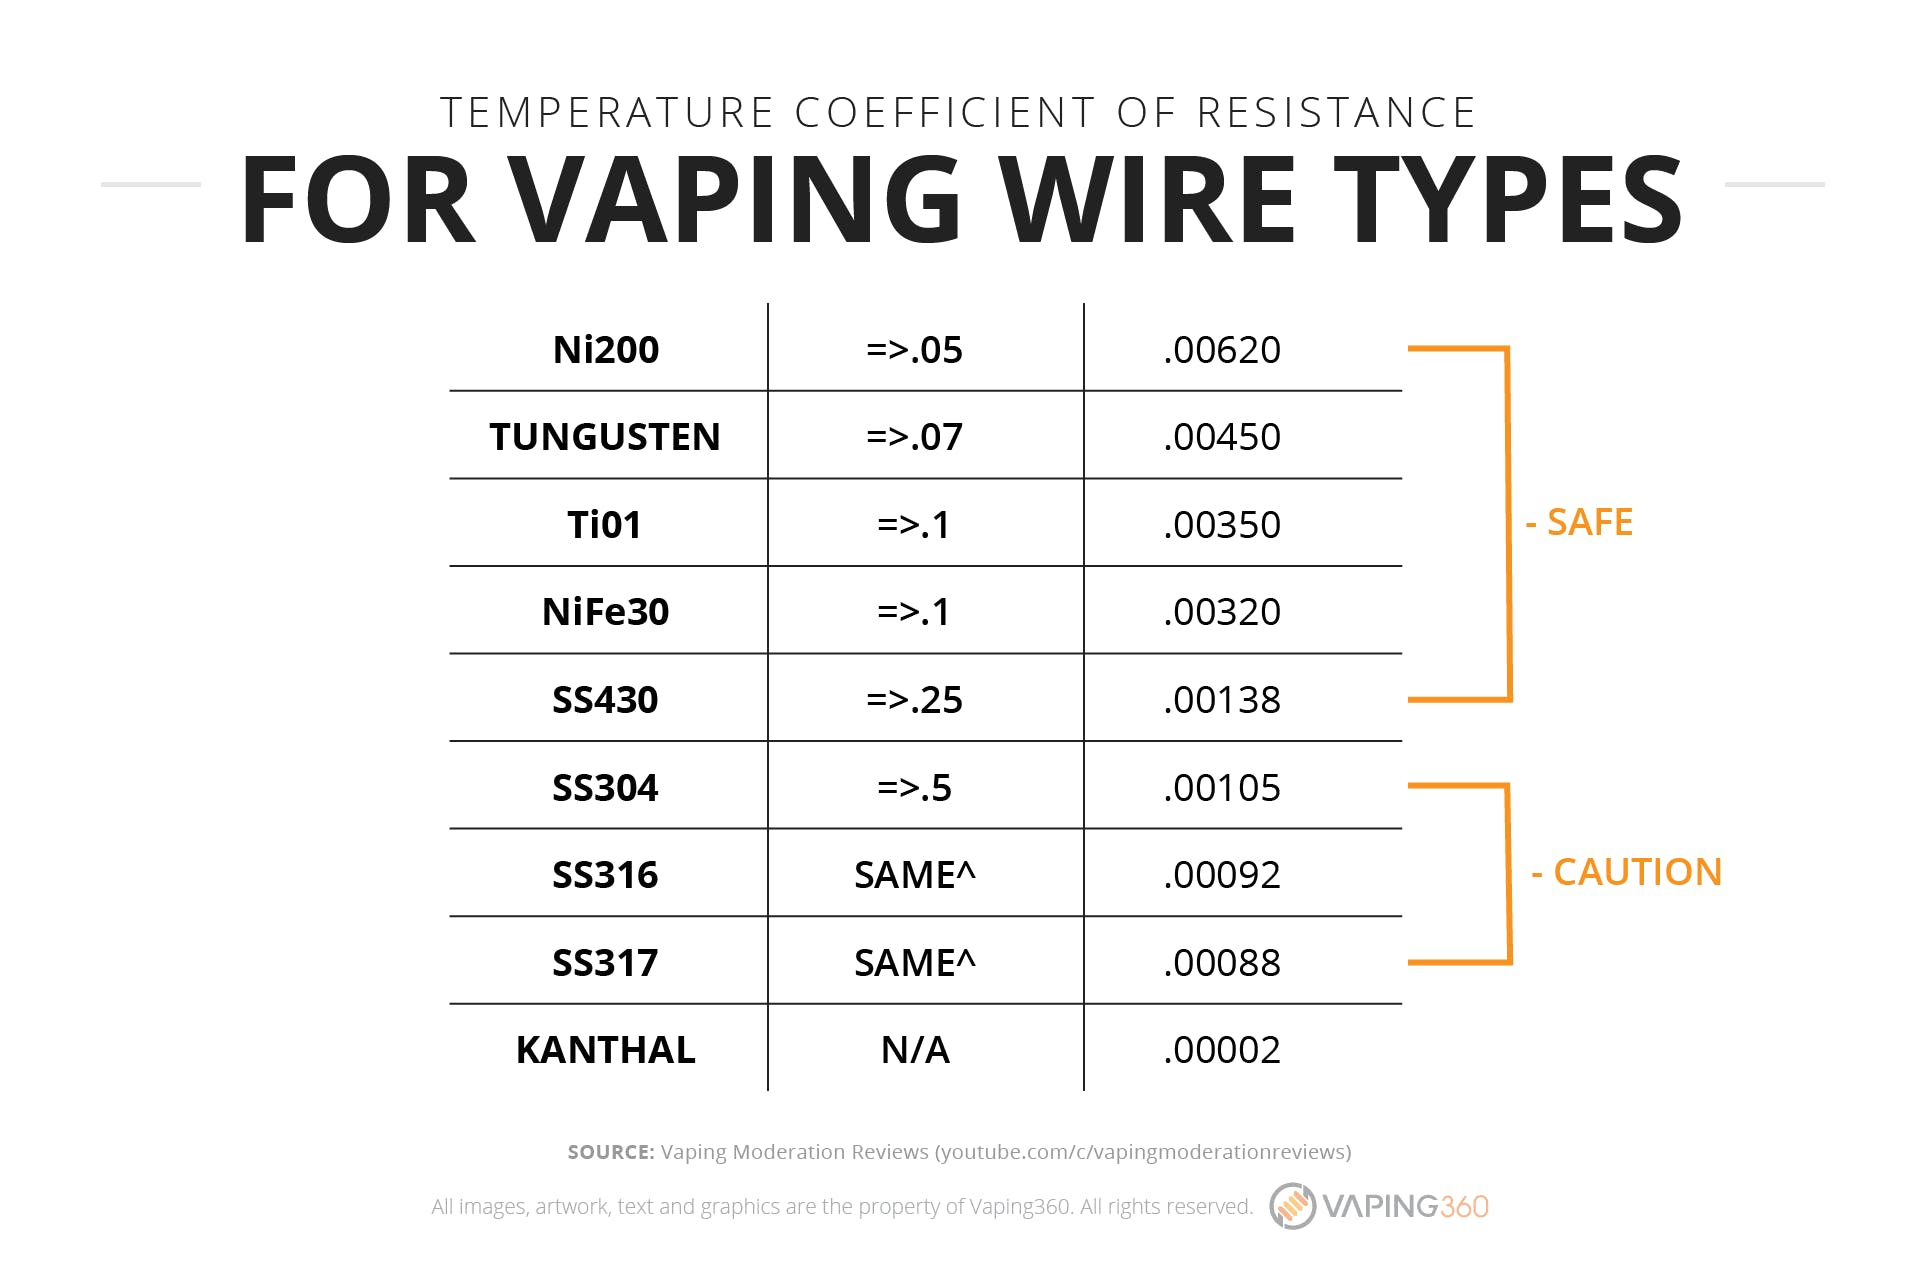 Temperature coefficient of resistance for vaping wire types